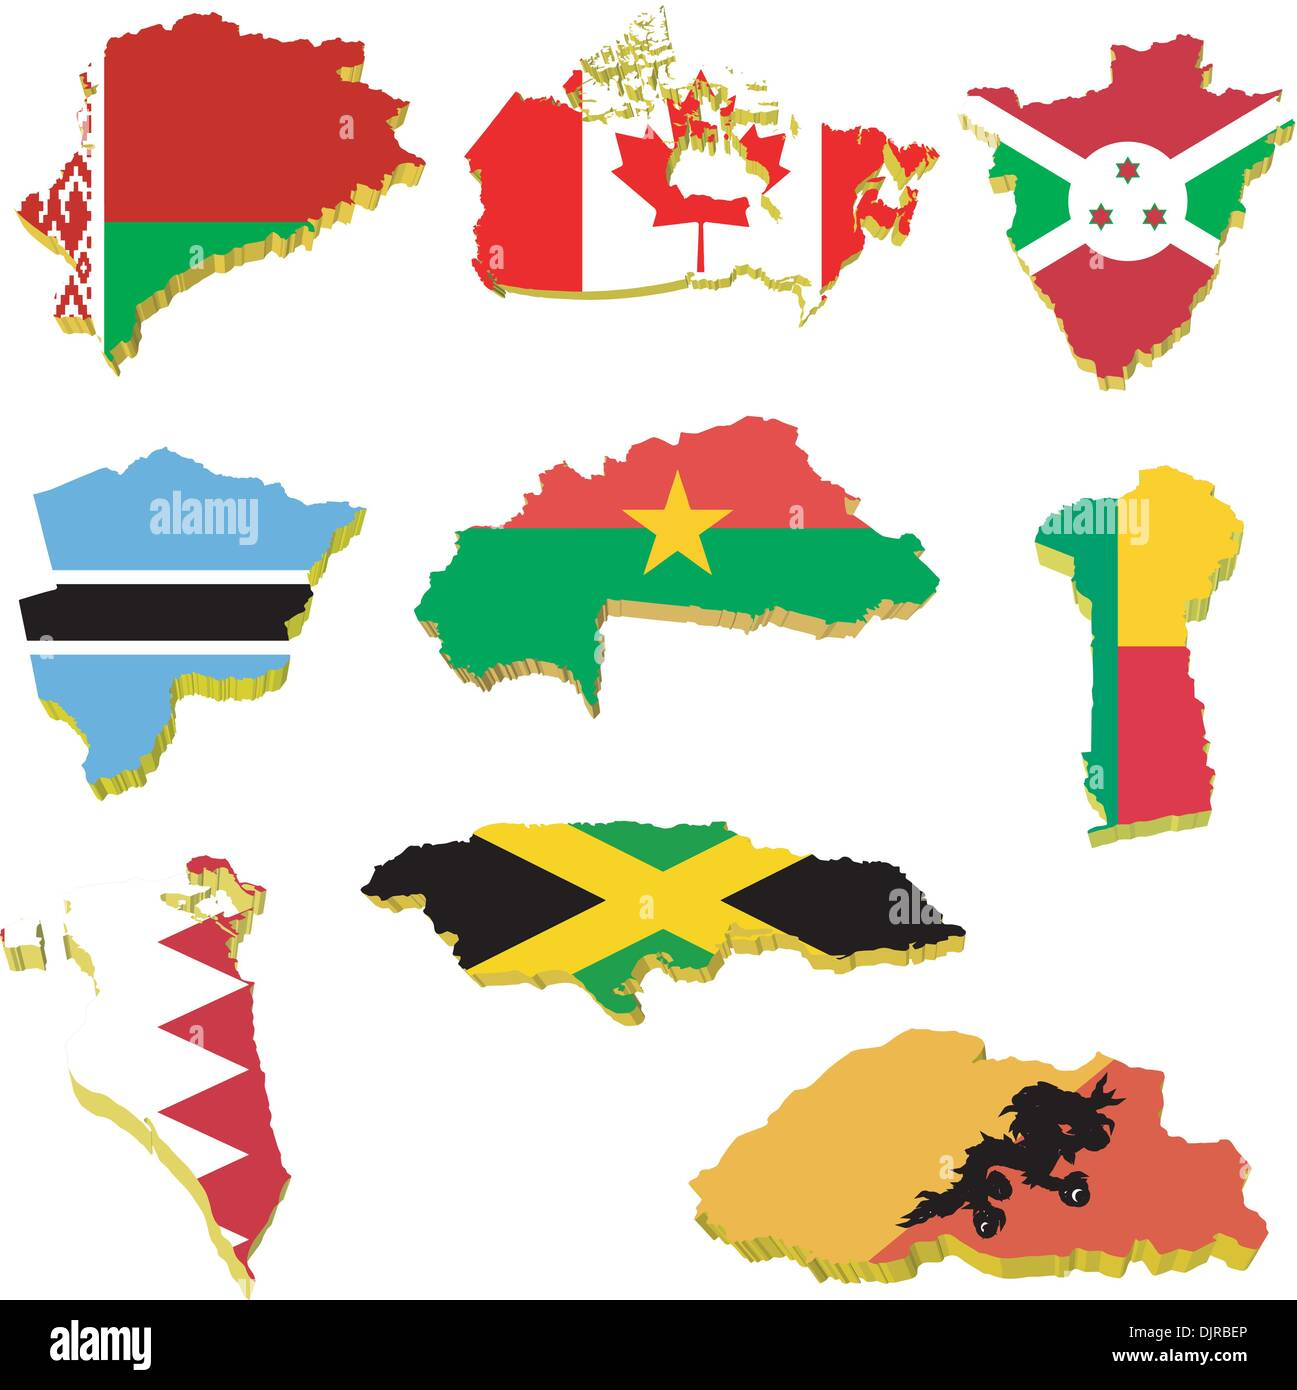 Collection volume vector maps of Belarus, Canada, Burundi, Burkina Faso, Benin, Bahrain, Jamaica, Bhutan, Botswana - Stock Vector